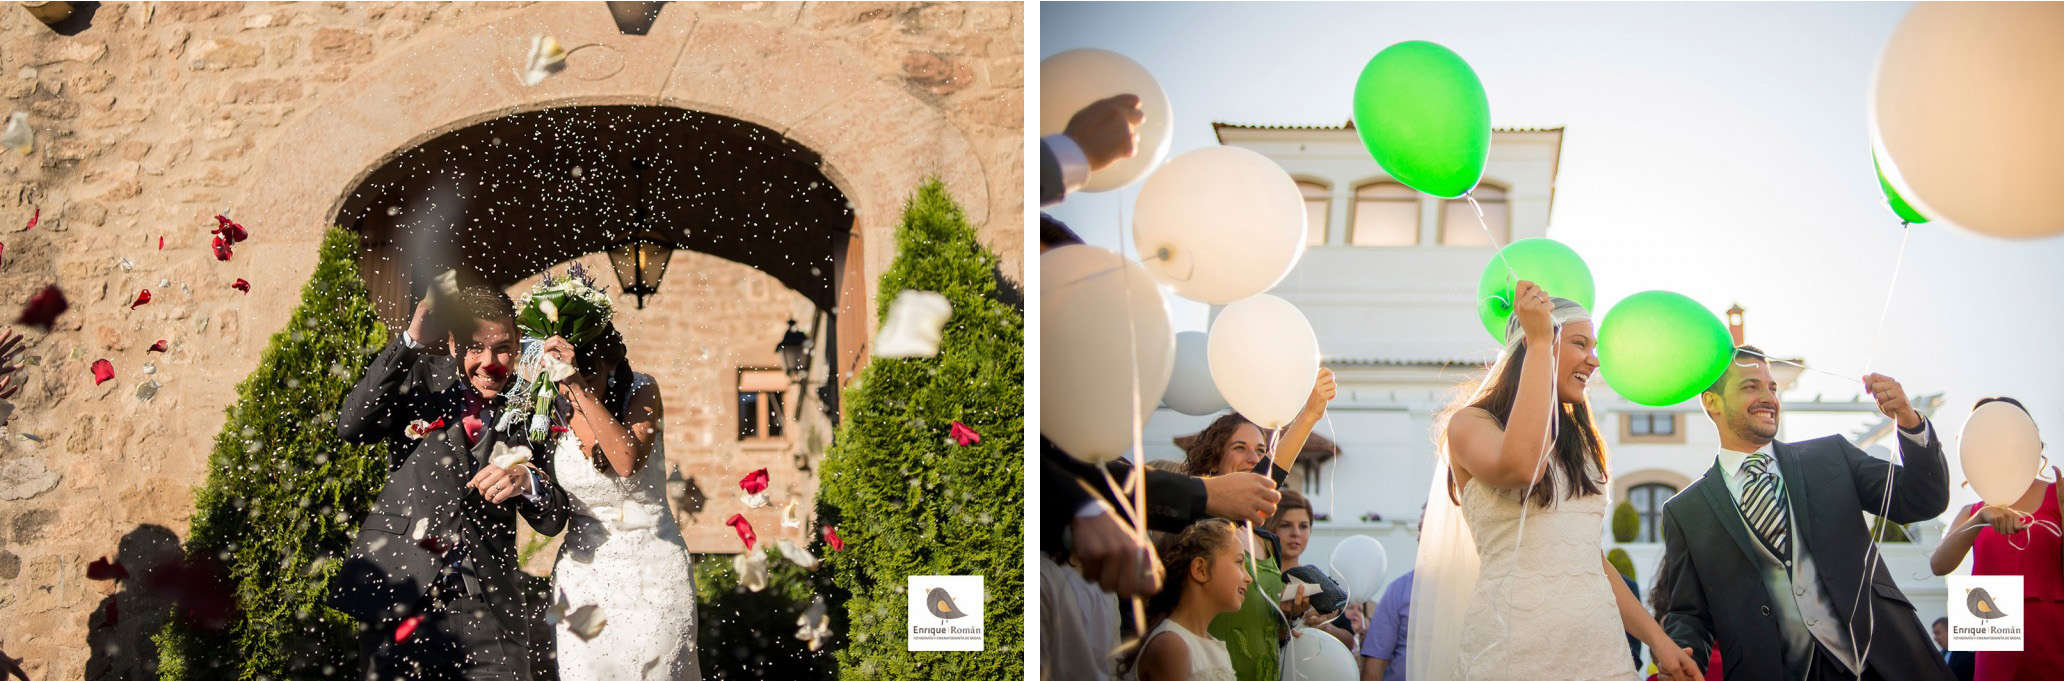 wedding-planners-sitges